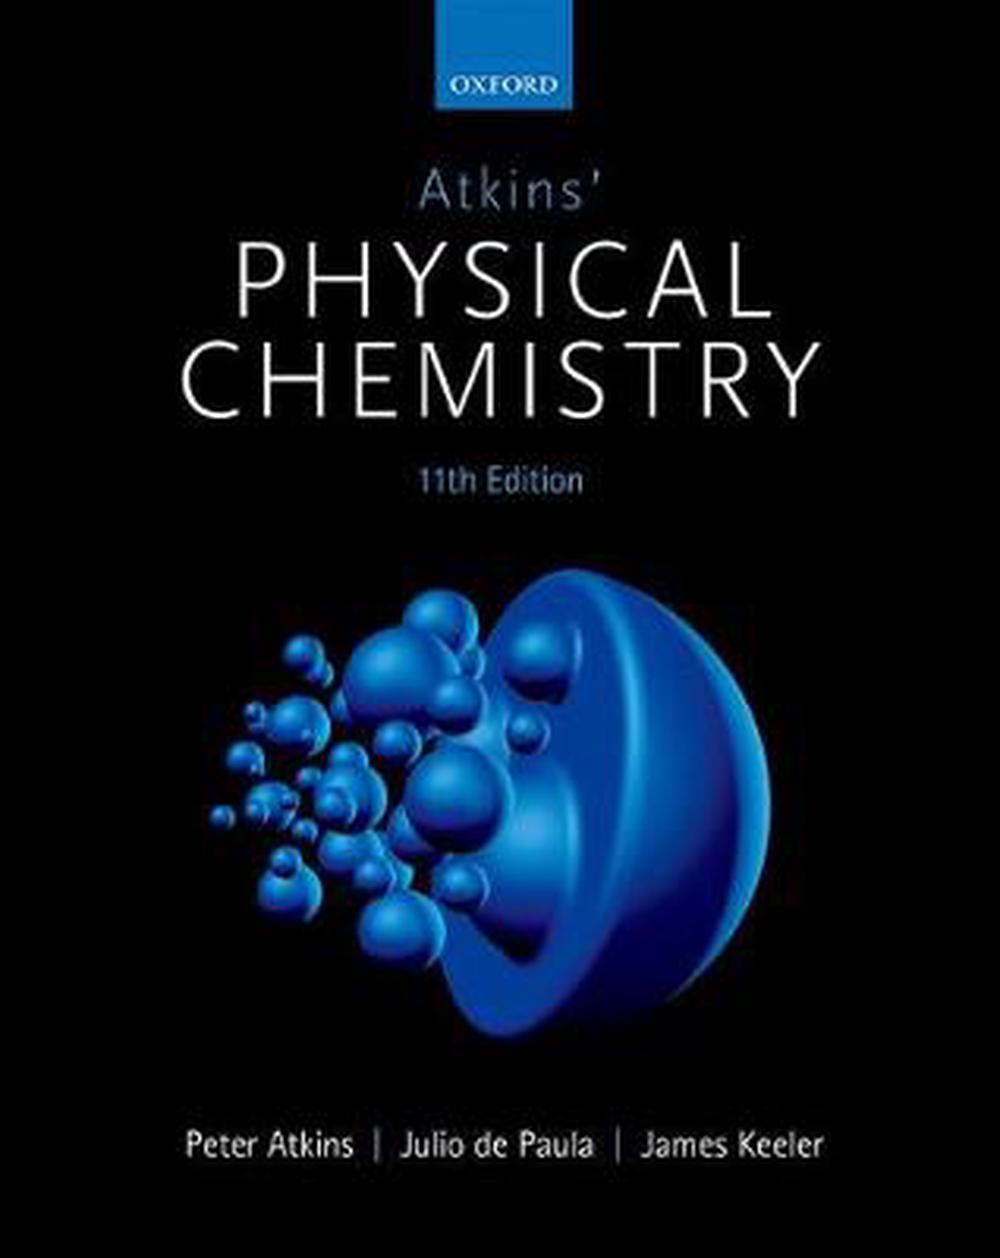 Atkins' Physical Chemistry, 11th Edition